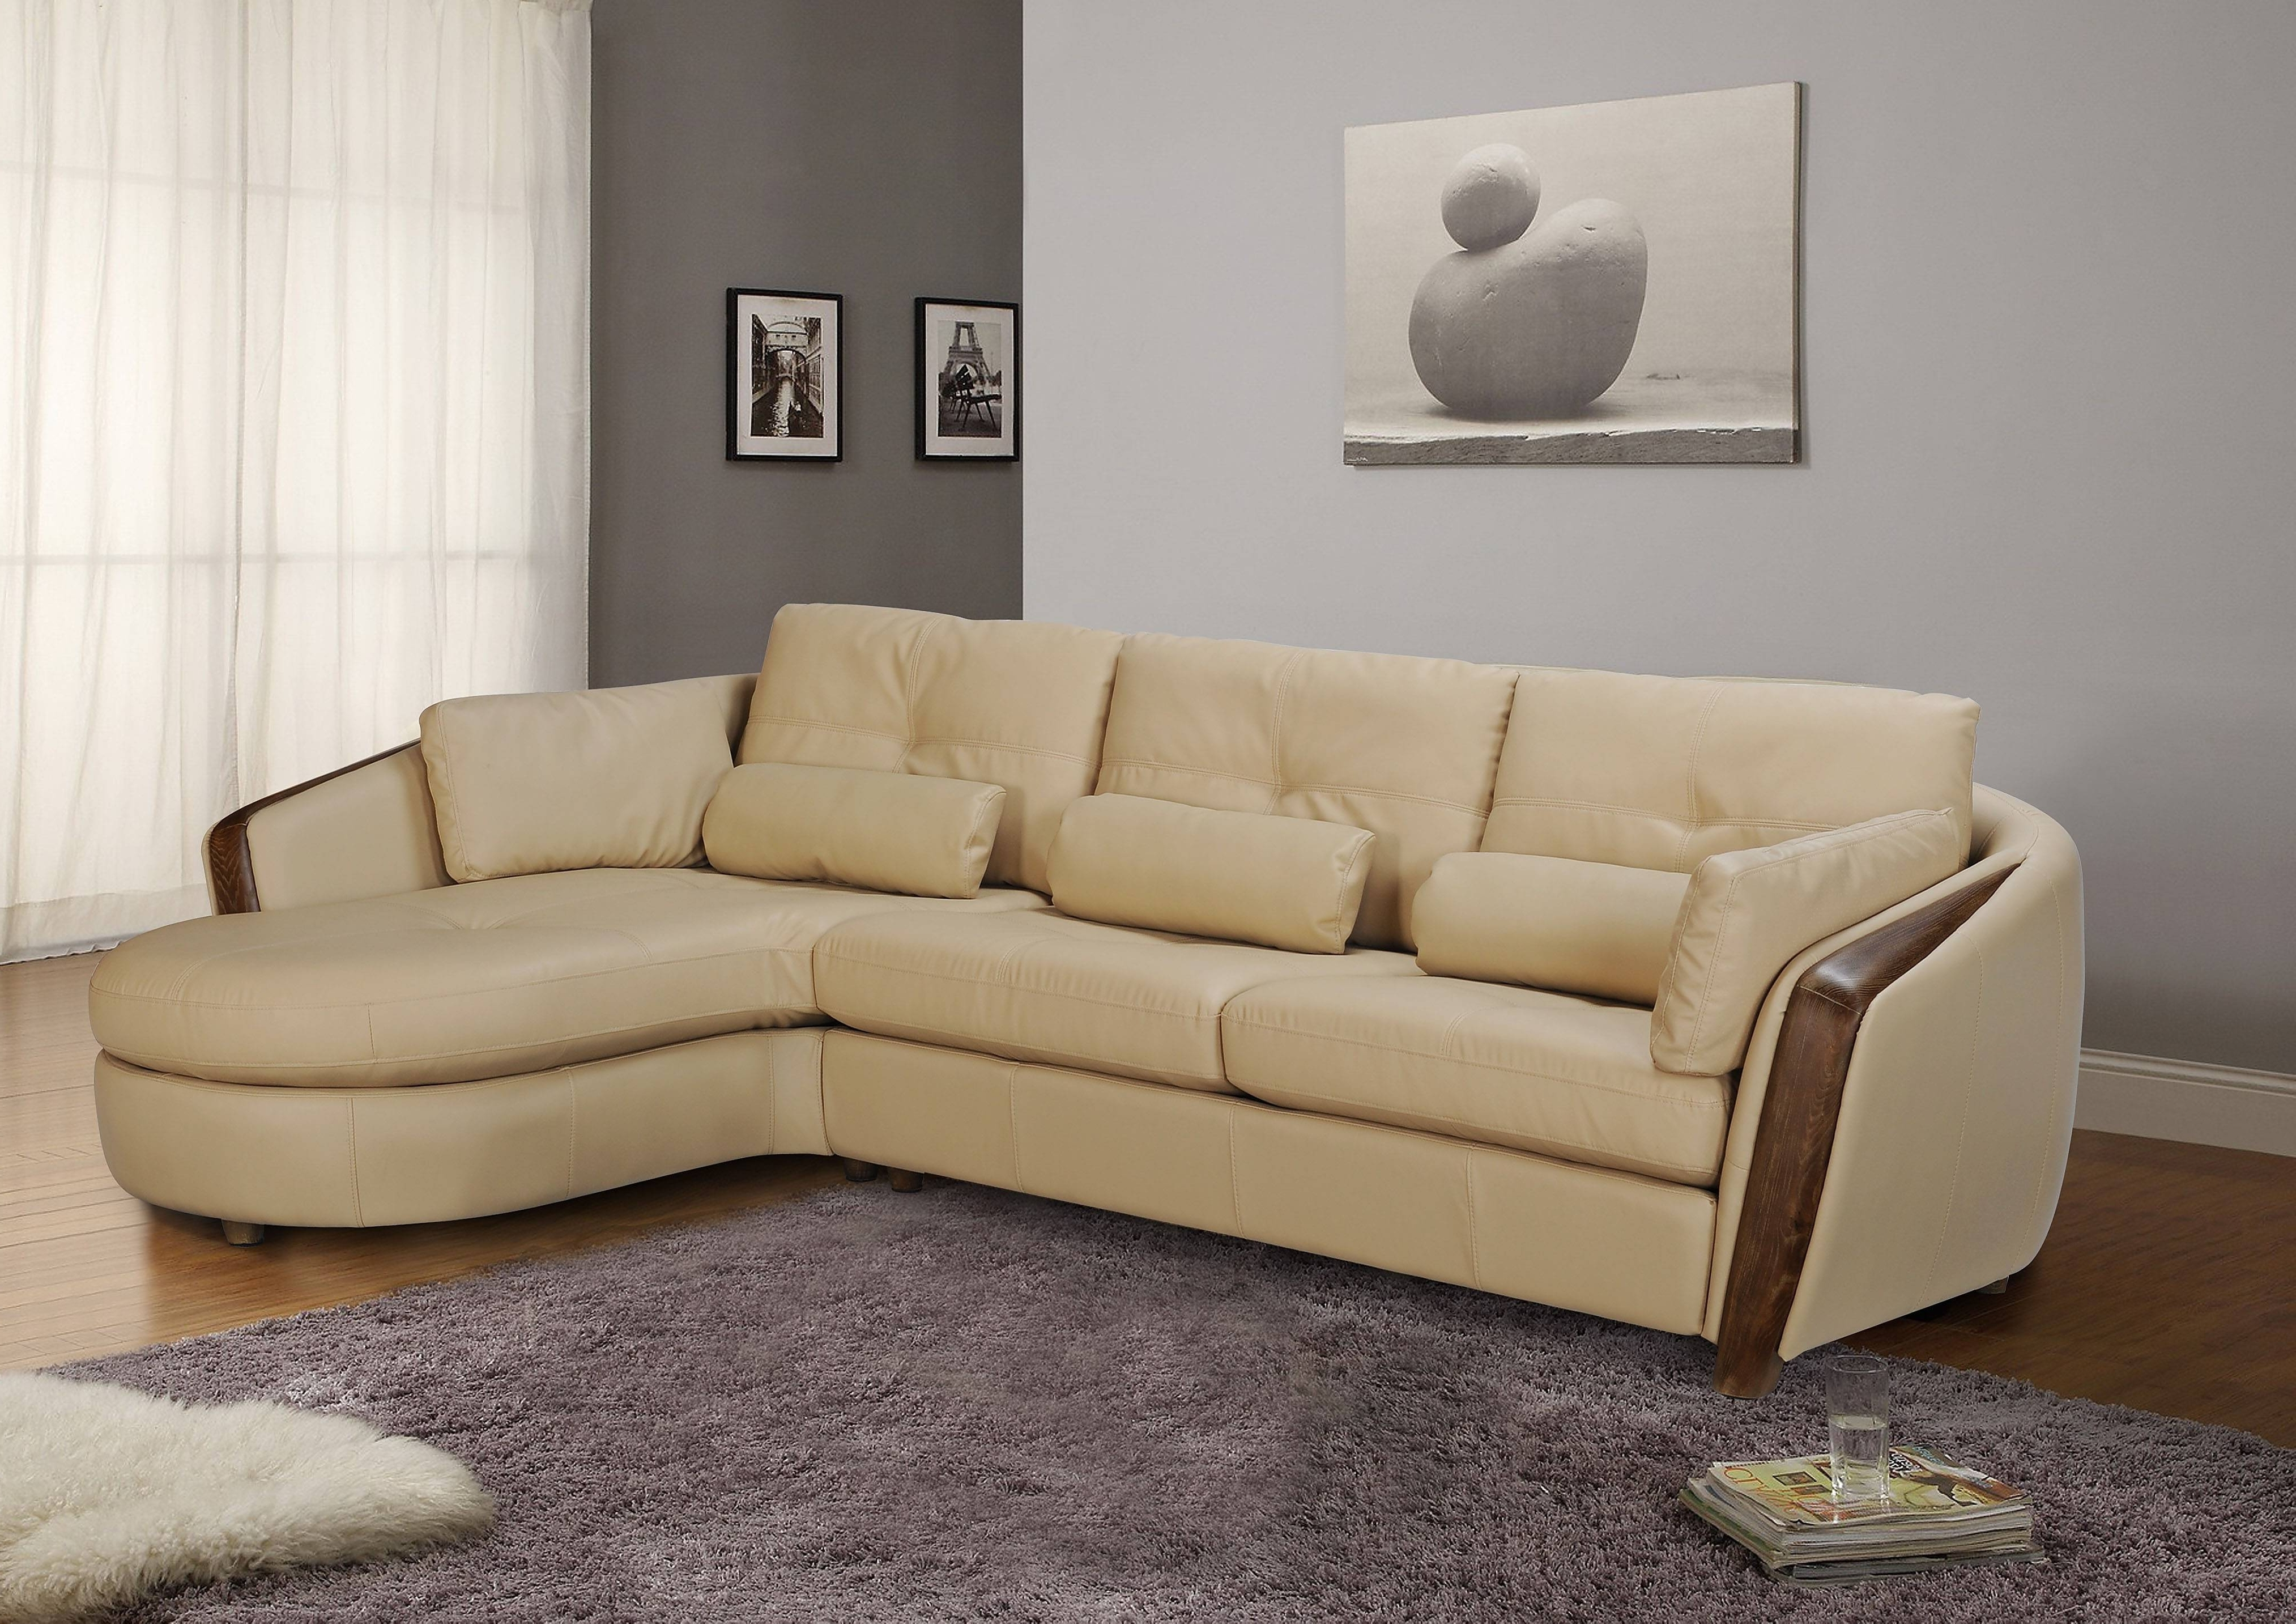 Ontario Sectional Sofas In Fashionable Taupe Bonded Leather Sectional Sofa With Ash Wood Accent Baltimore (View 4 of 15)